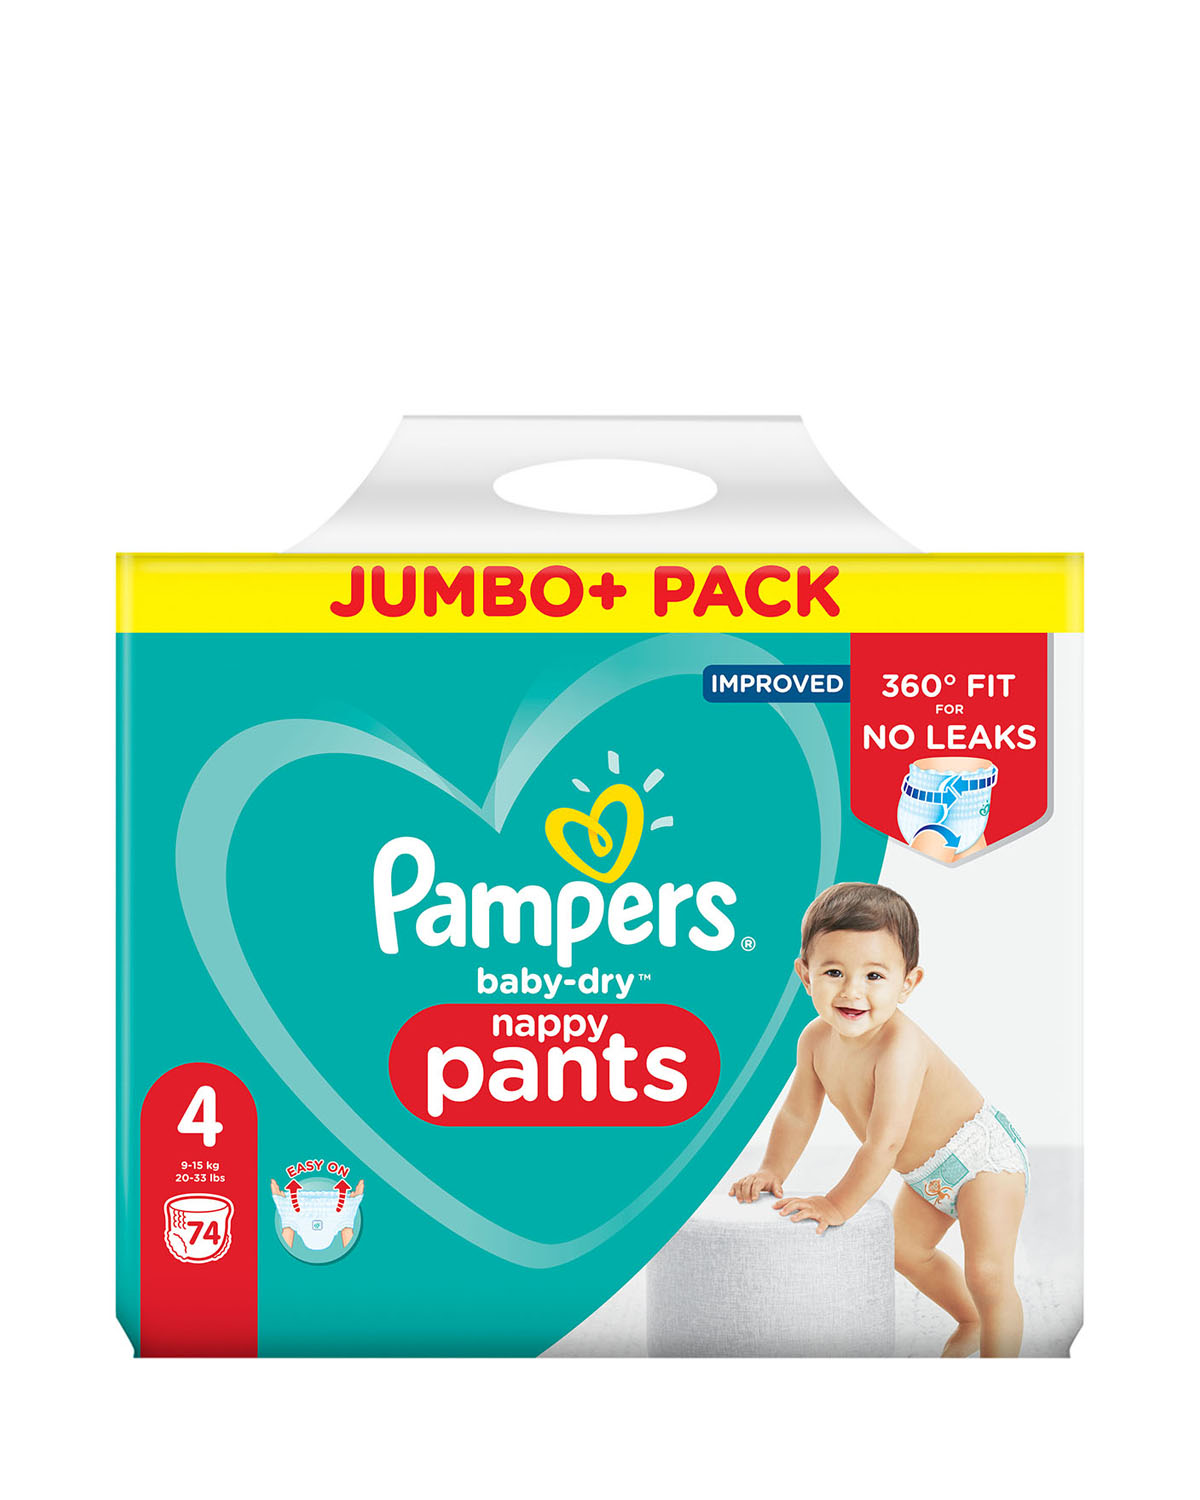 Pampers Baby Dry Nappy Pants Size: 4 - 74 Nappies